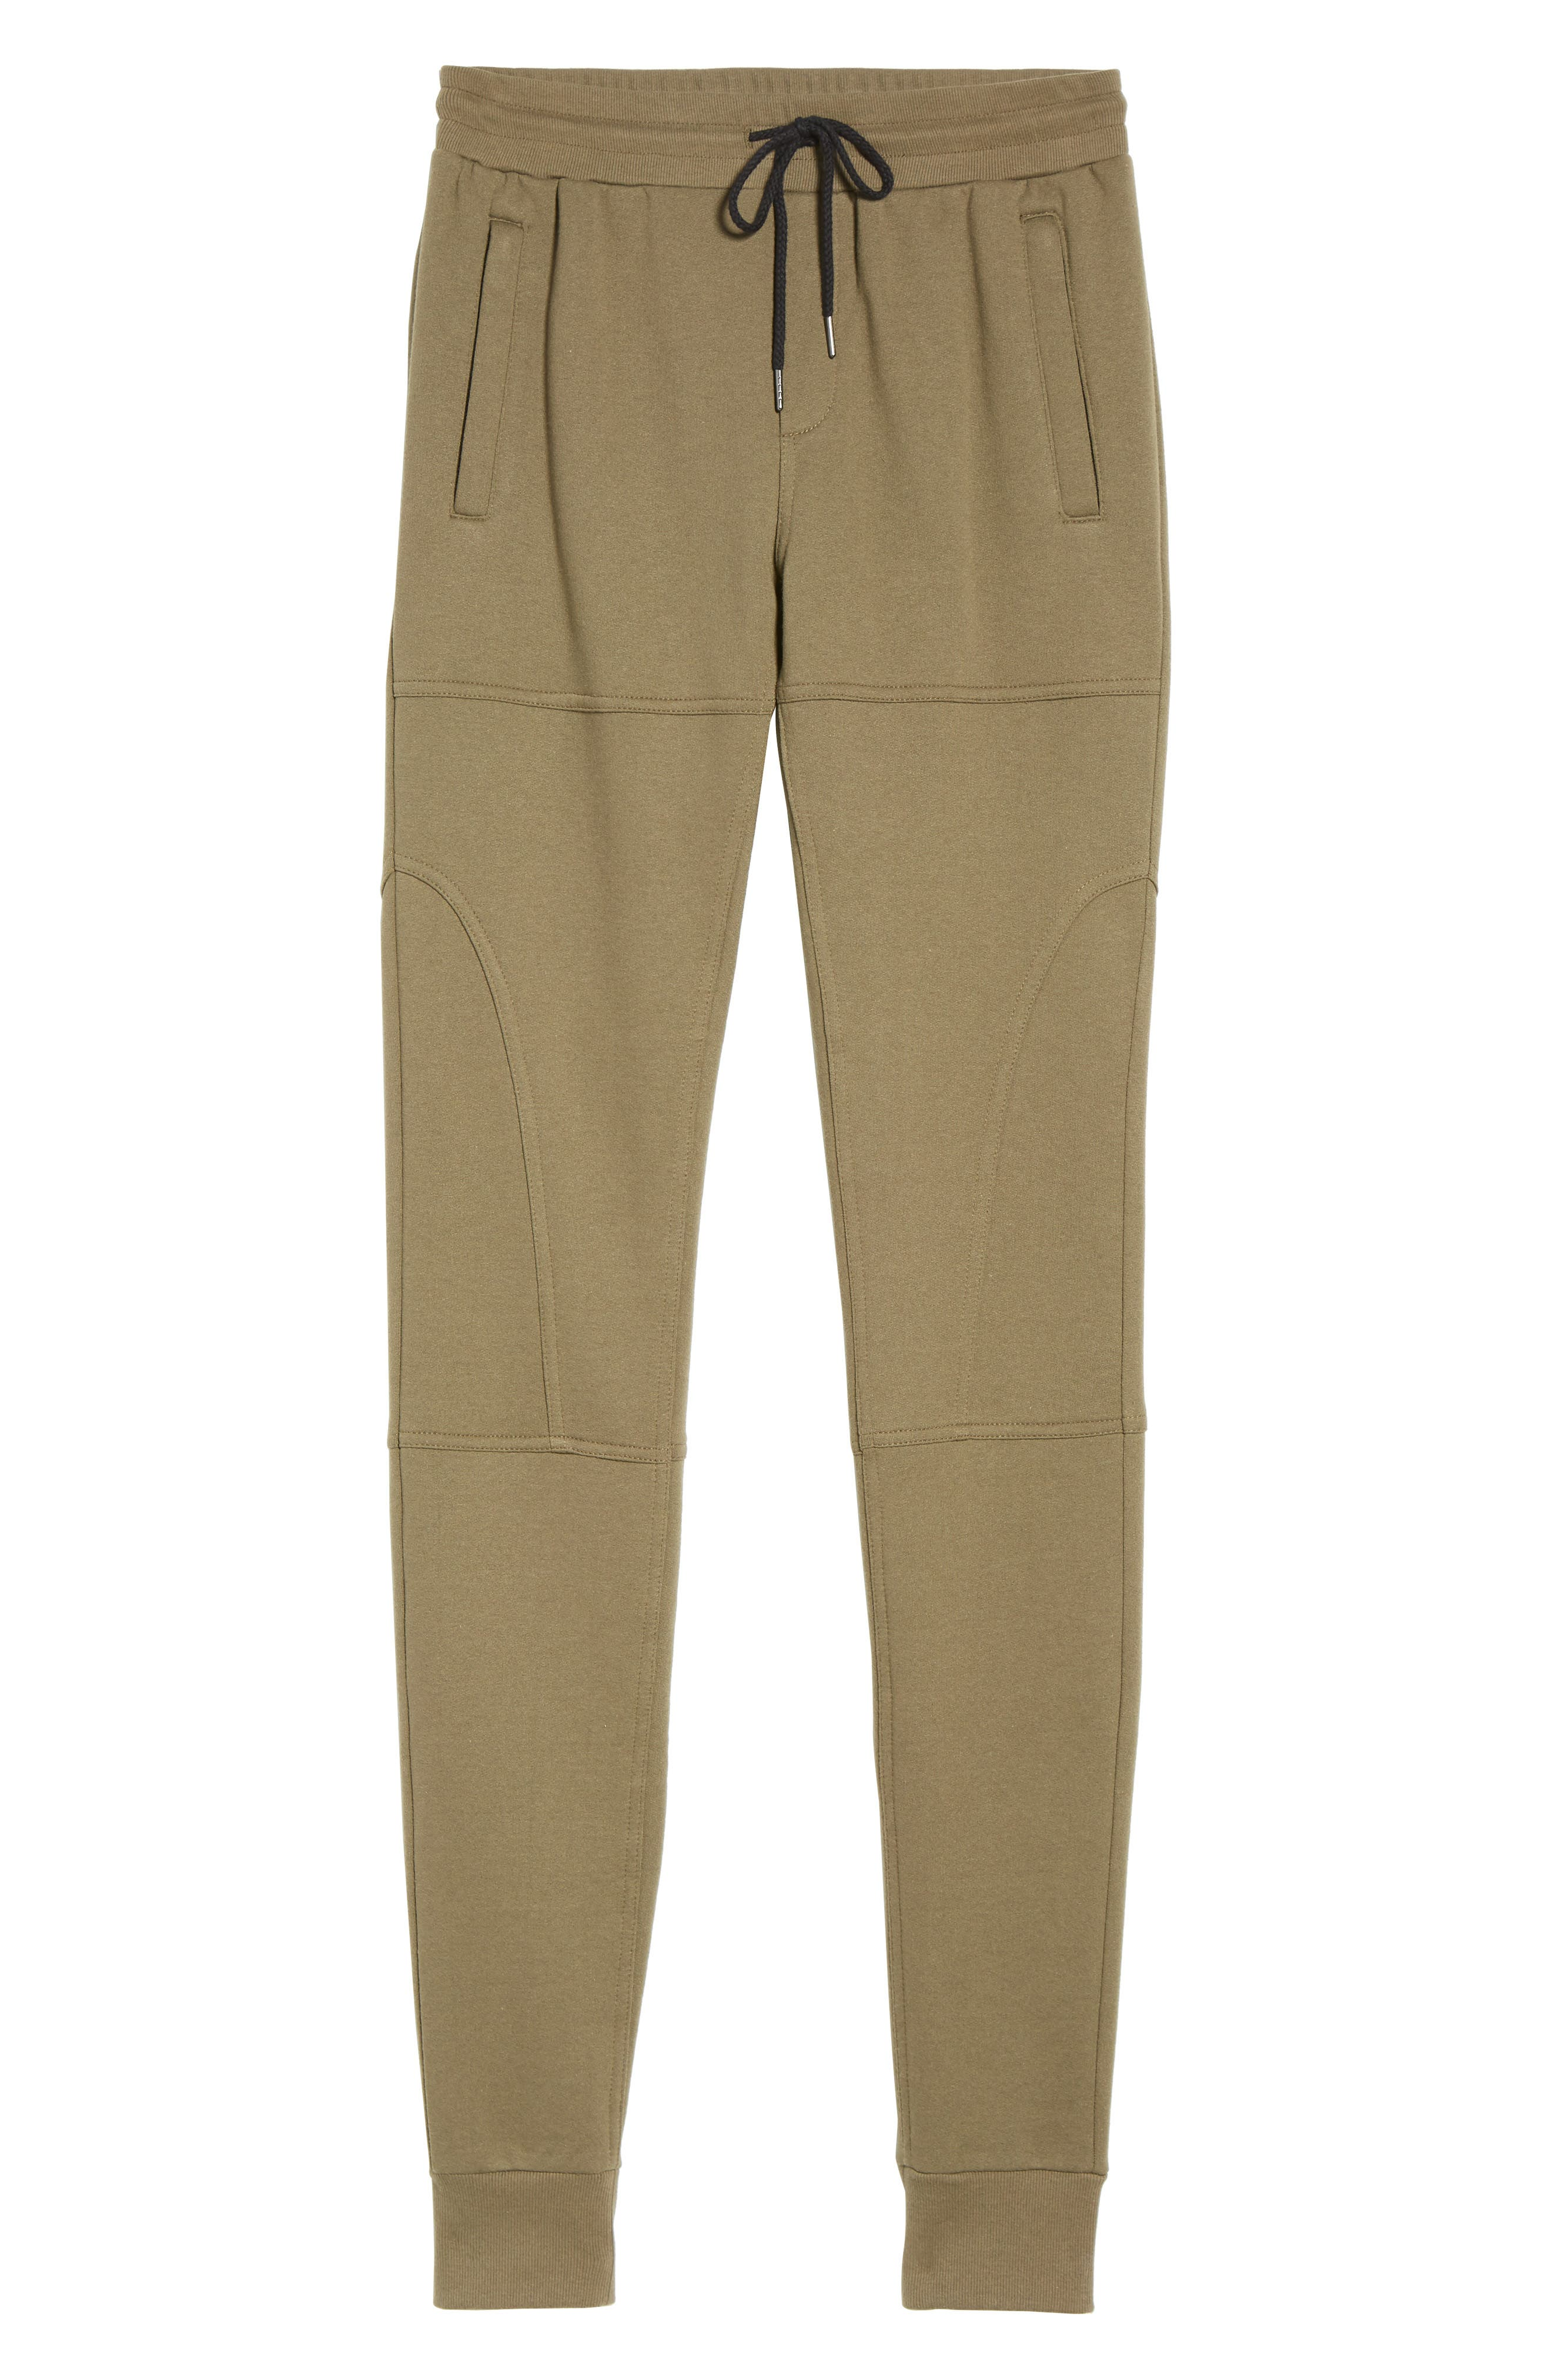 French Terry Sweatpants,                             Alternate thumbnail 6, color,                             Army